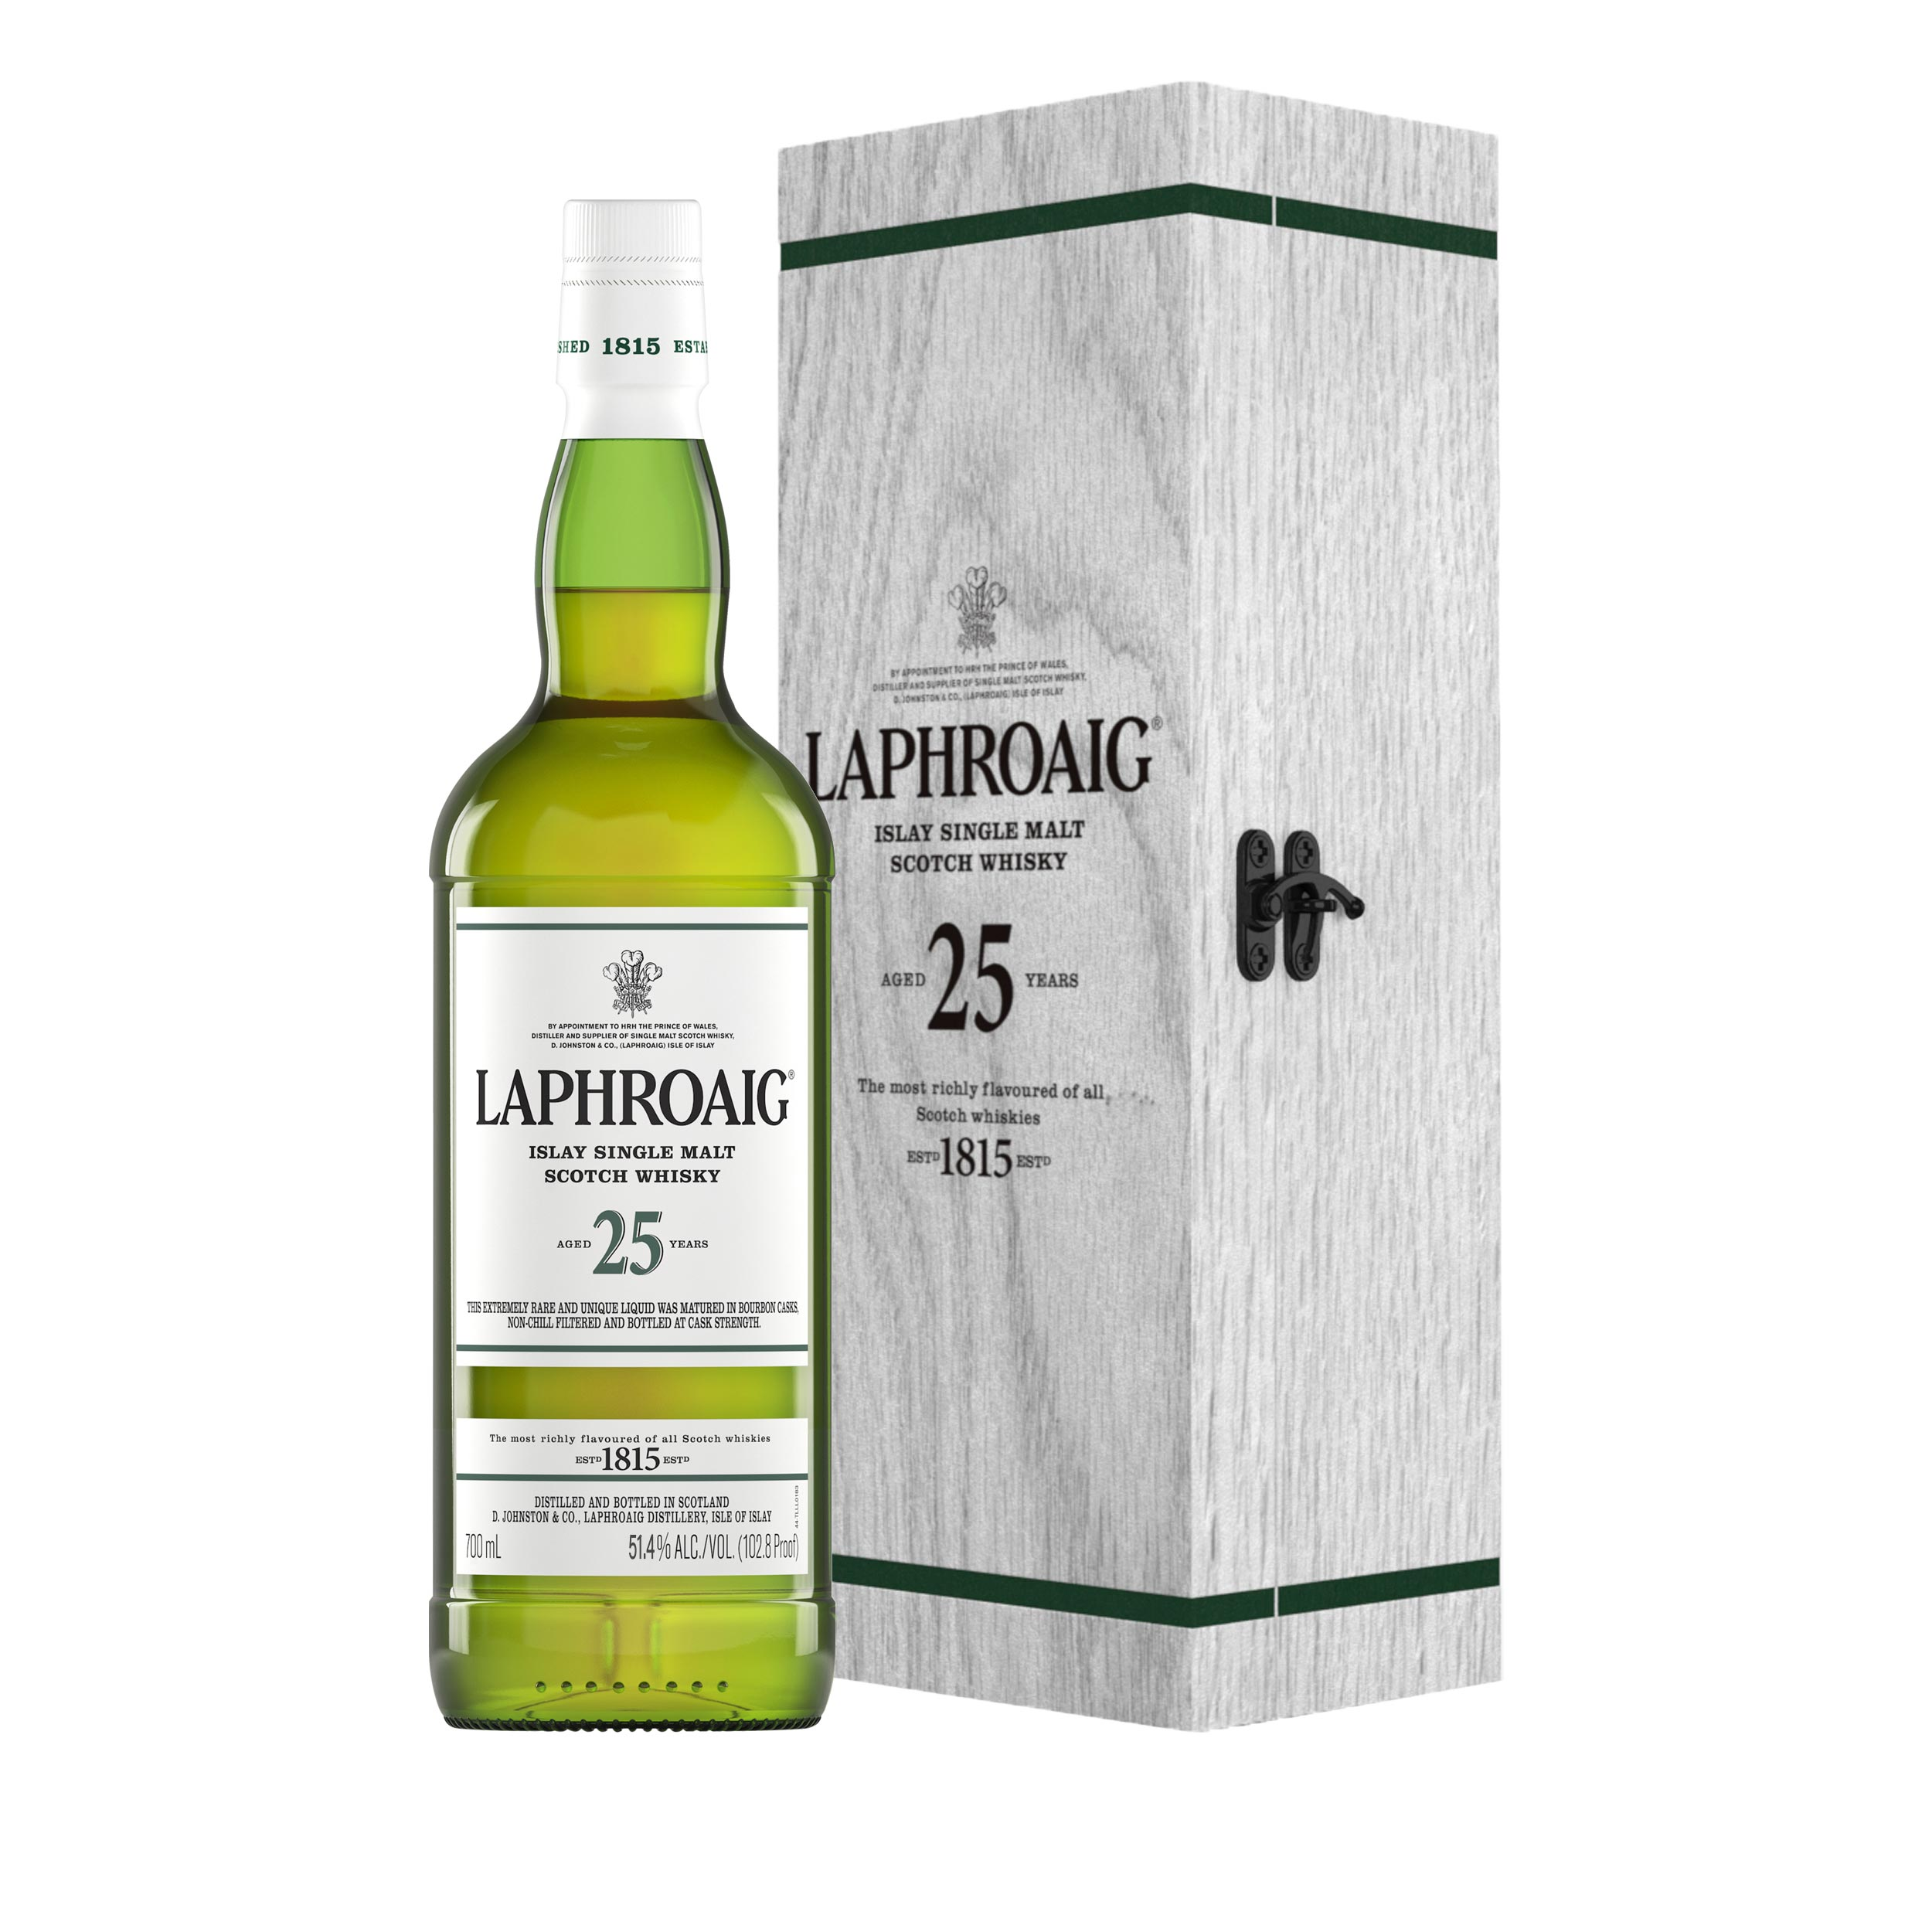 Laphroaig 25 Year Old Cask Strength Islay Single Malt Scotch Whisky 70cl